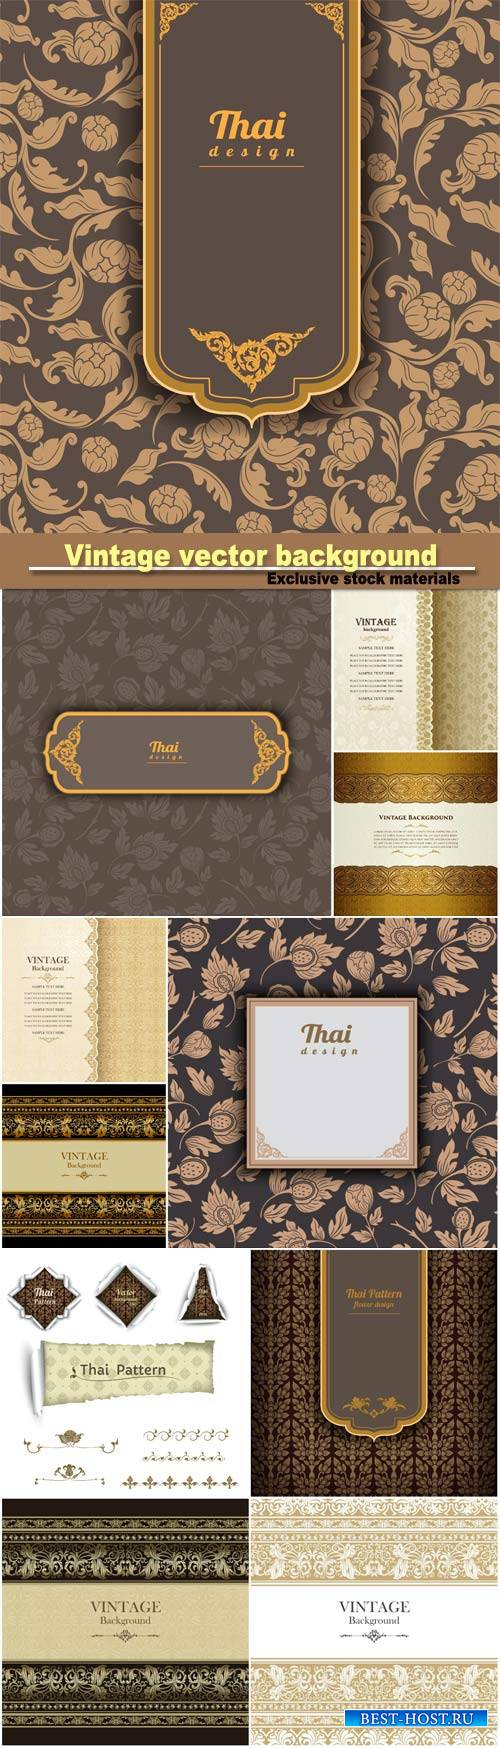 Vintage gold background, floral  ornamental pattern design